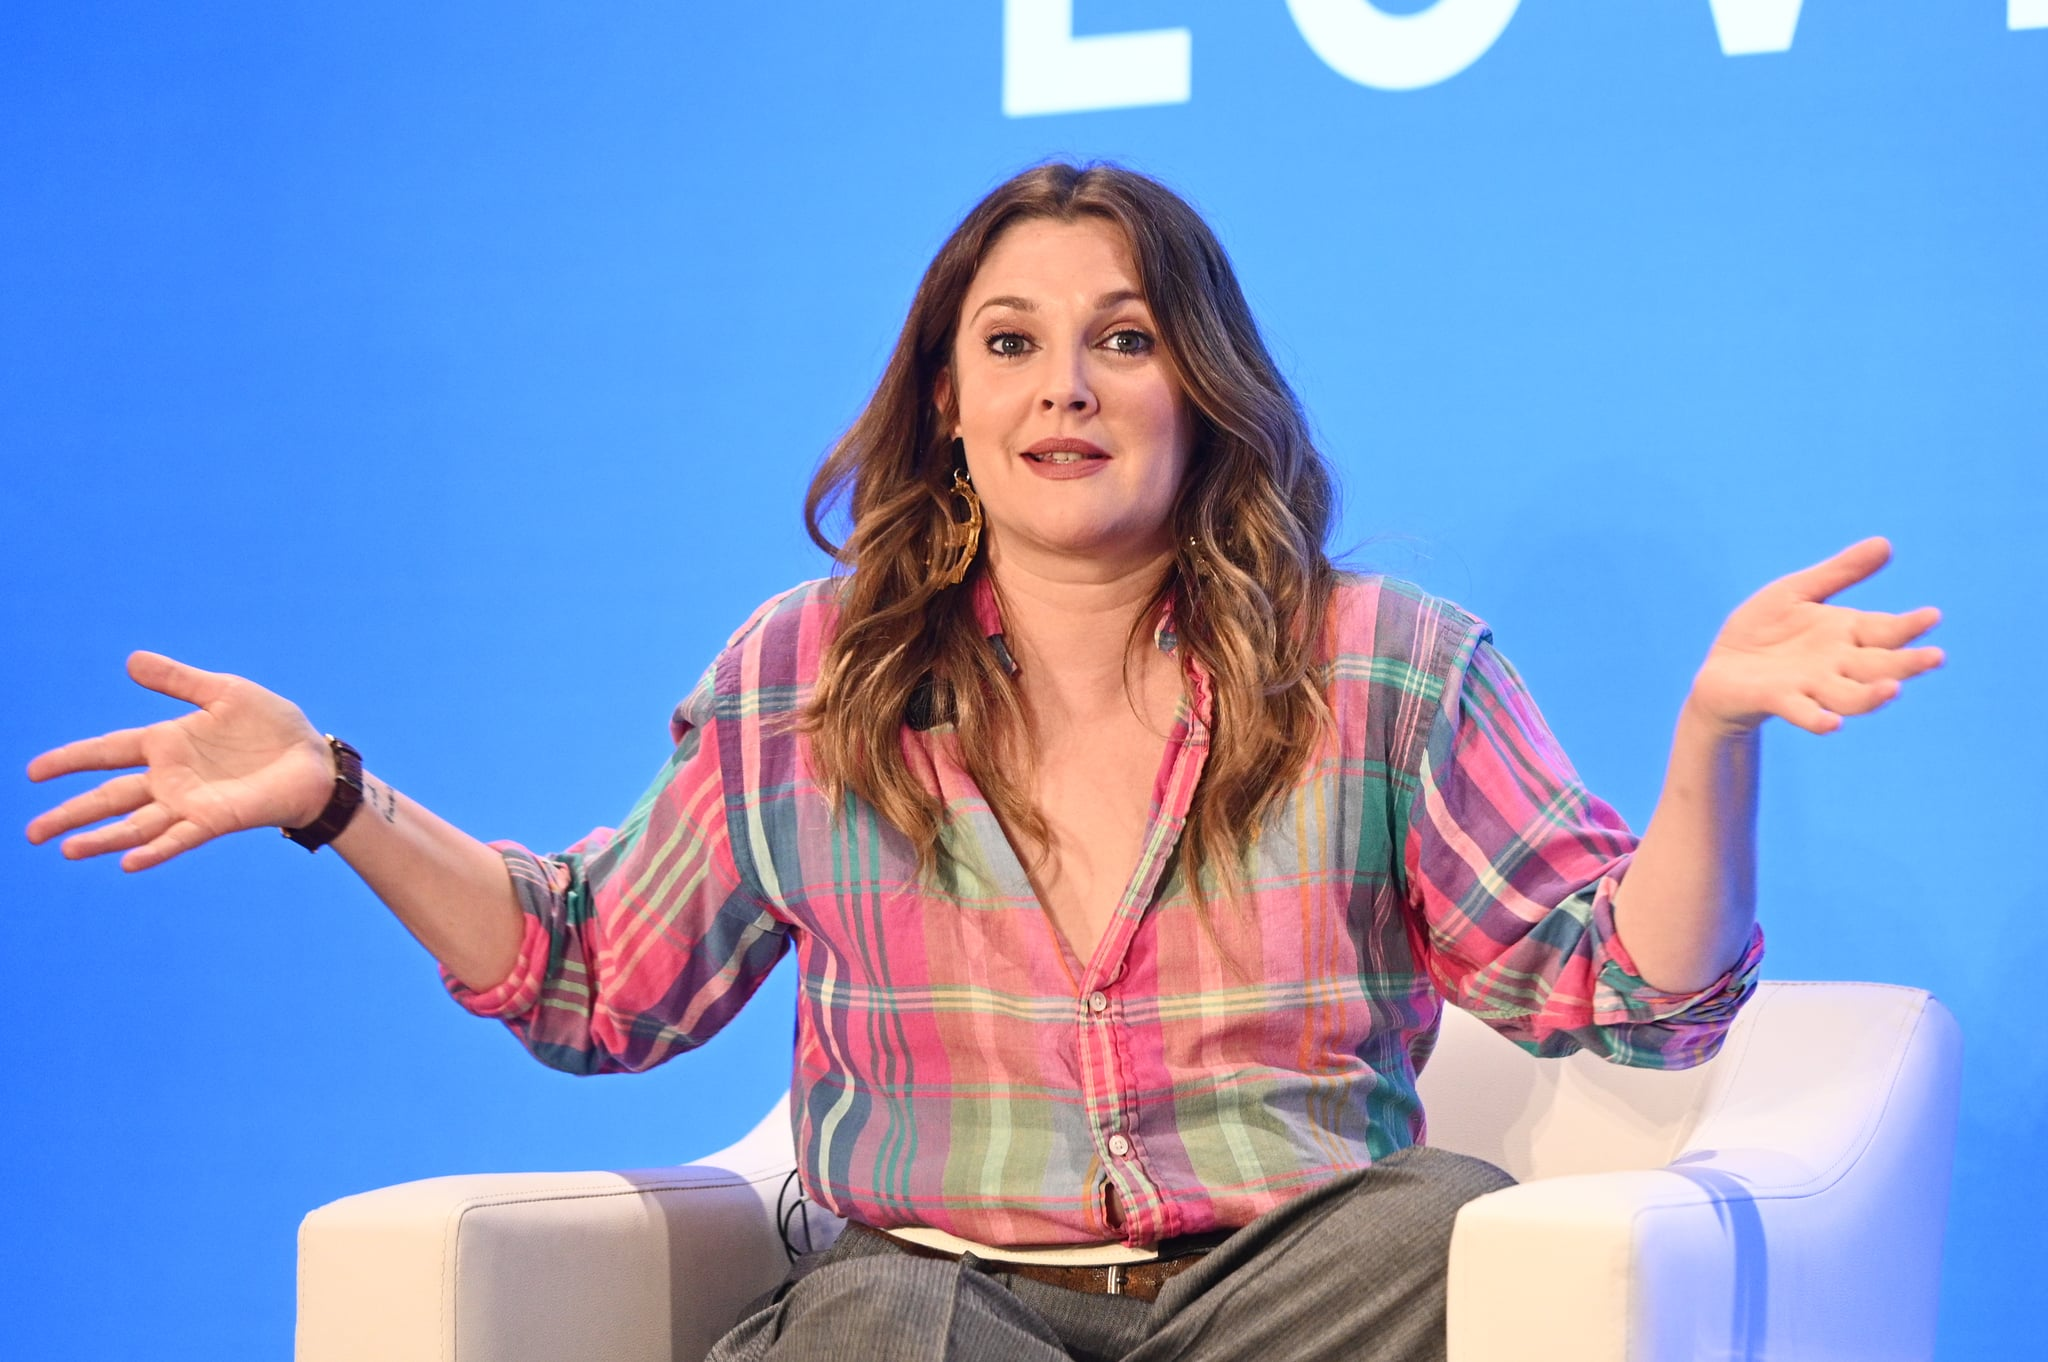 NEW YORK, NEW YORK - MAY 15: Drew Barrymore speaks onstage at the American Express and WeWork